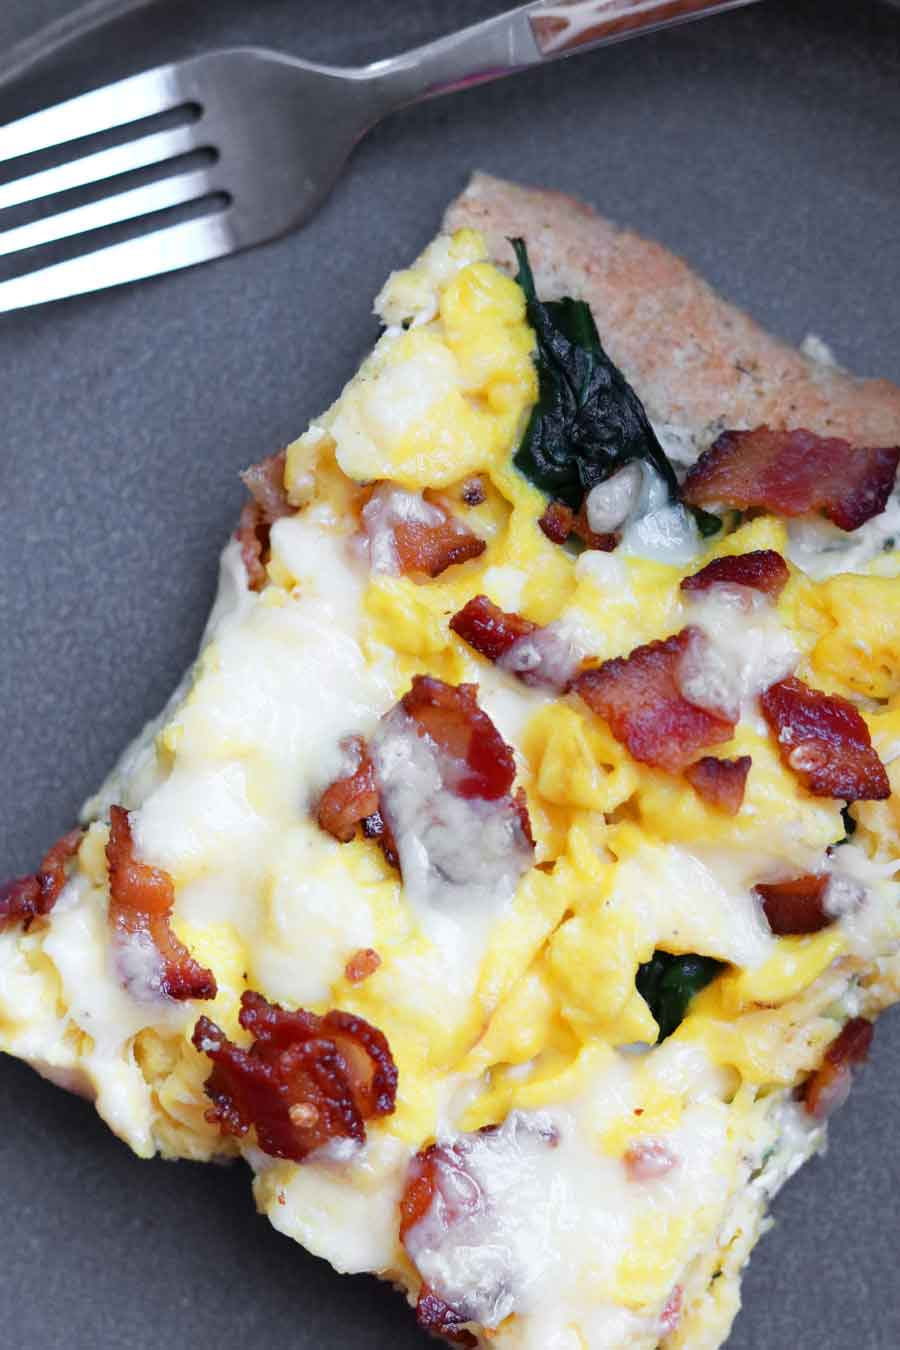 Gluten Free Breakfast Pizza - Make Ahead!